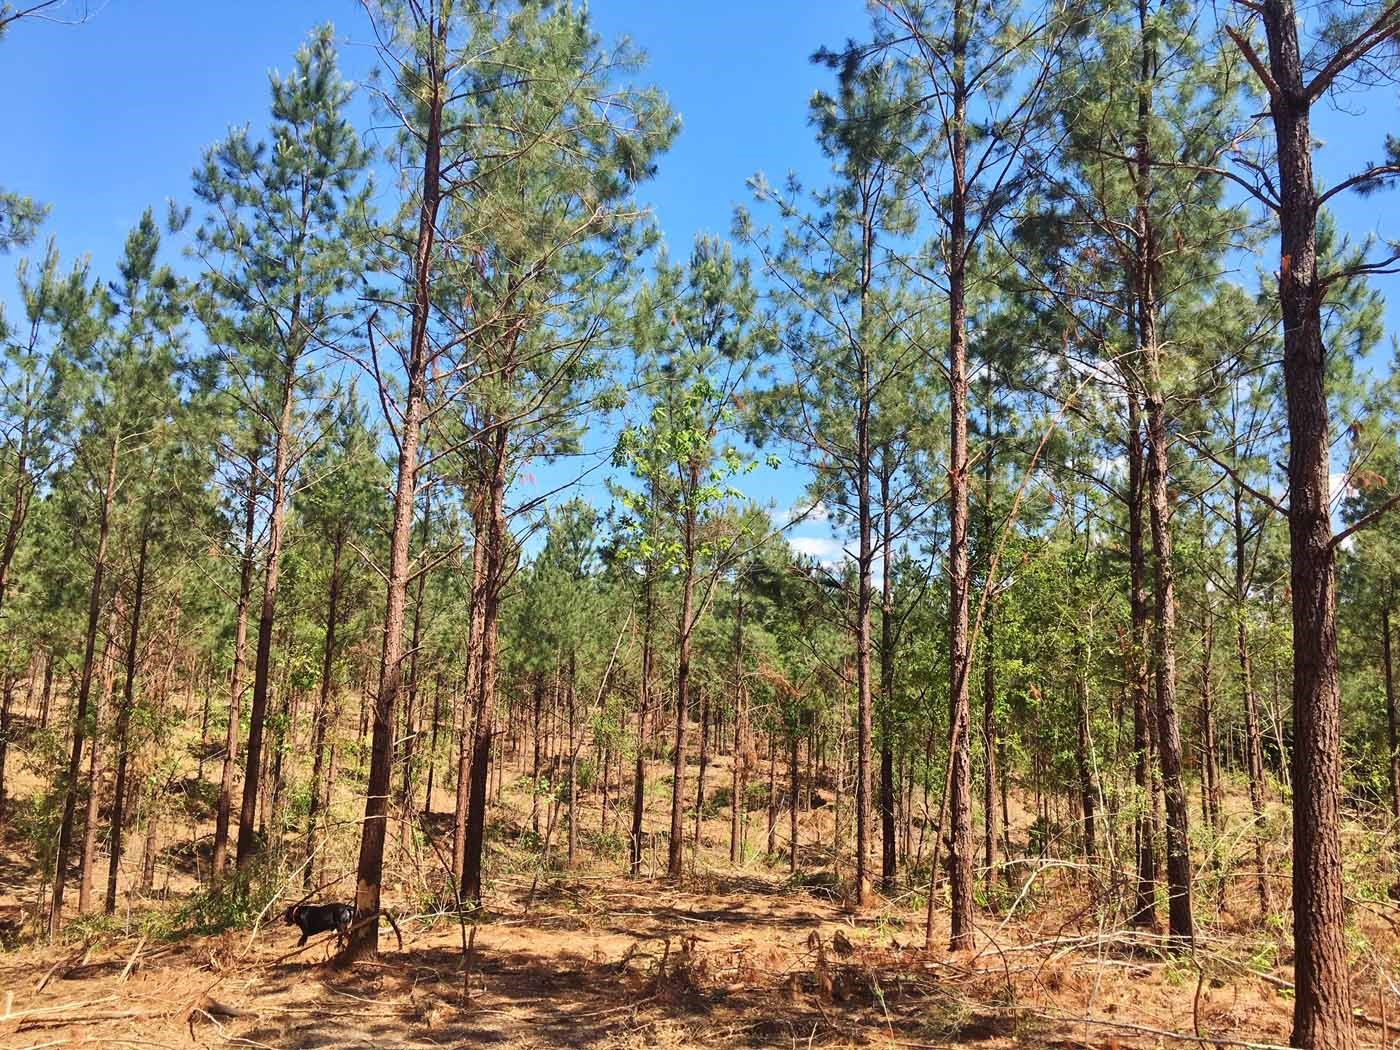 Small Acreage for Sale Amite County MS Home Site Camp Site